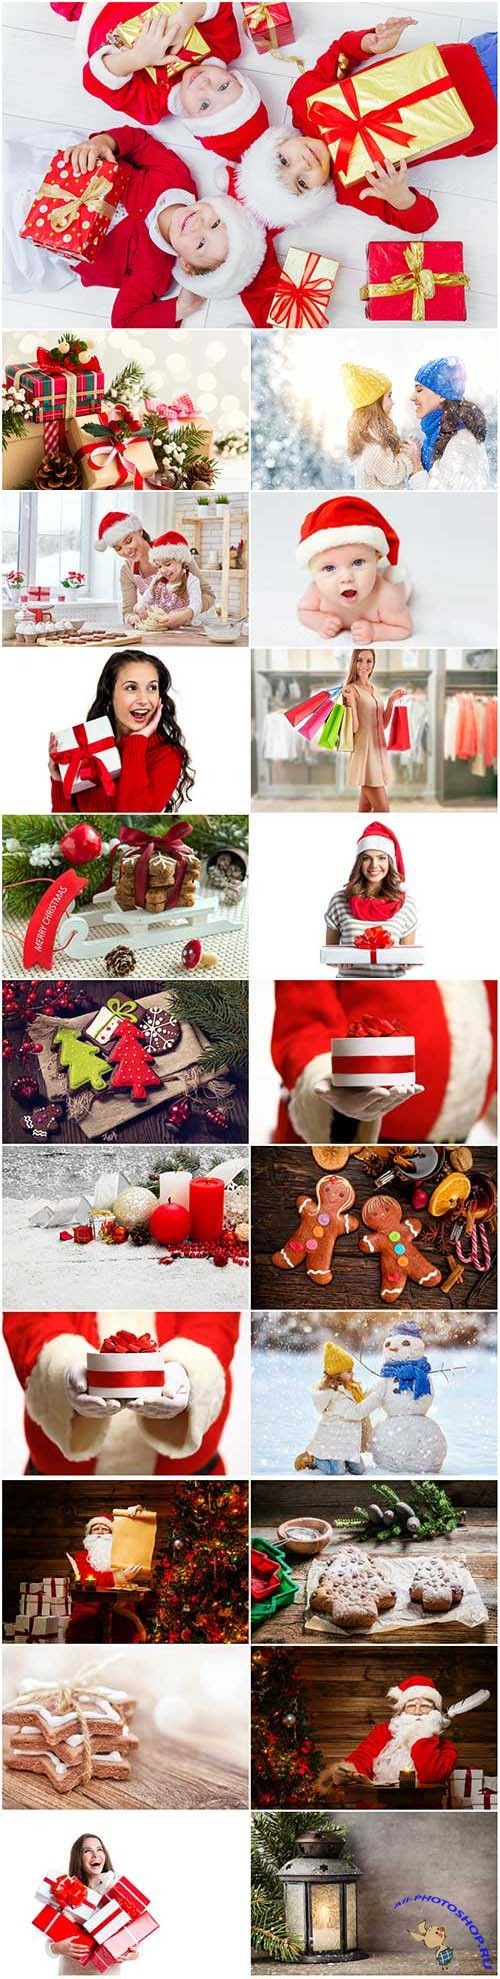 New Year and Christmas stock photos 97